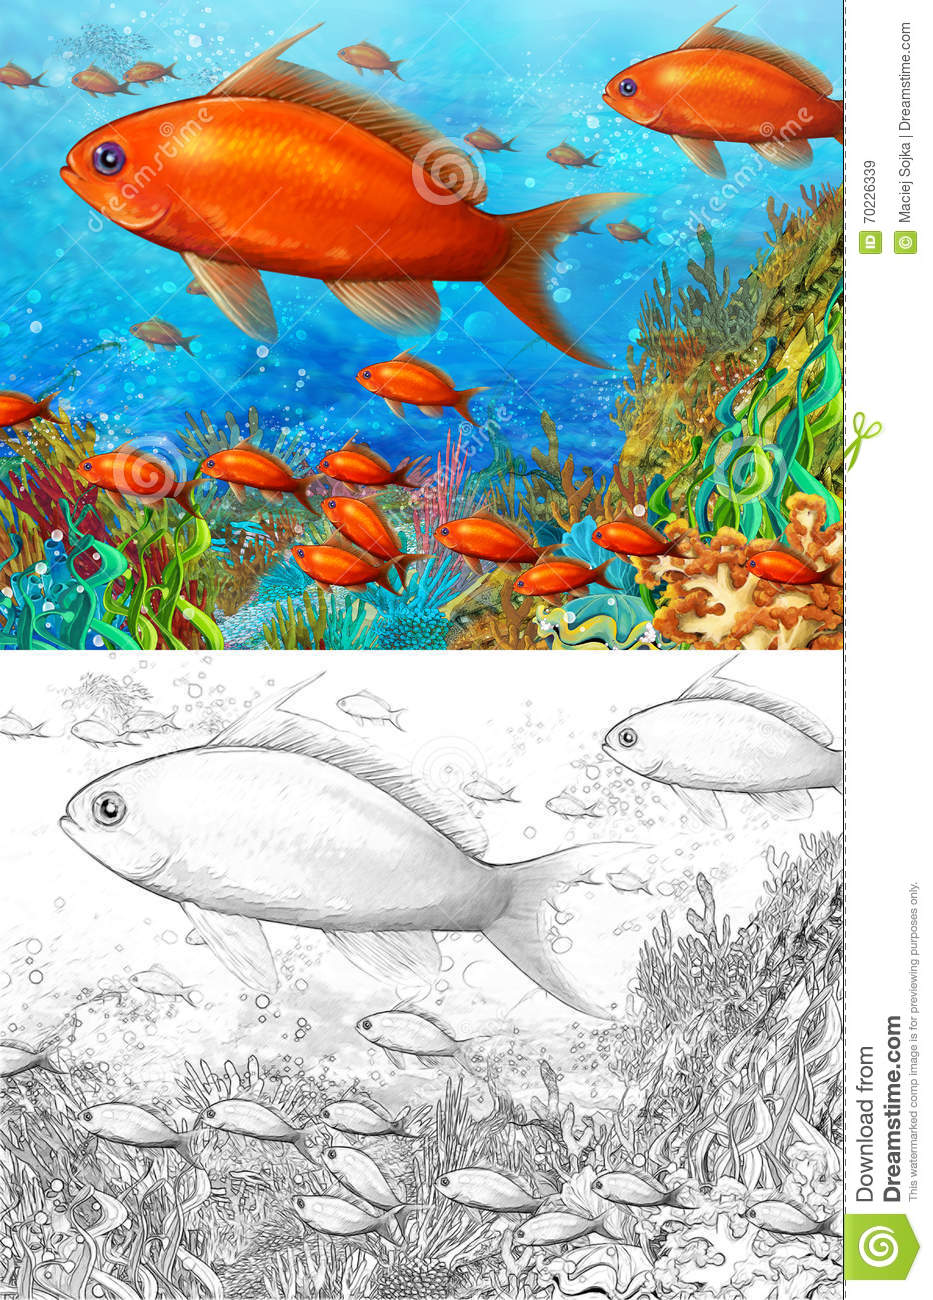 coral reef small colorful coral fishes coloring page happy illustration children